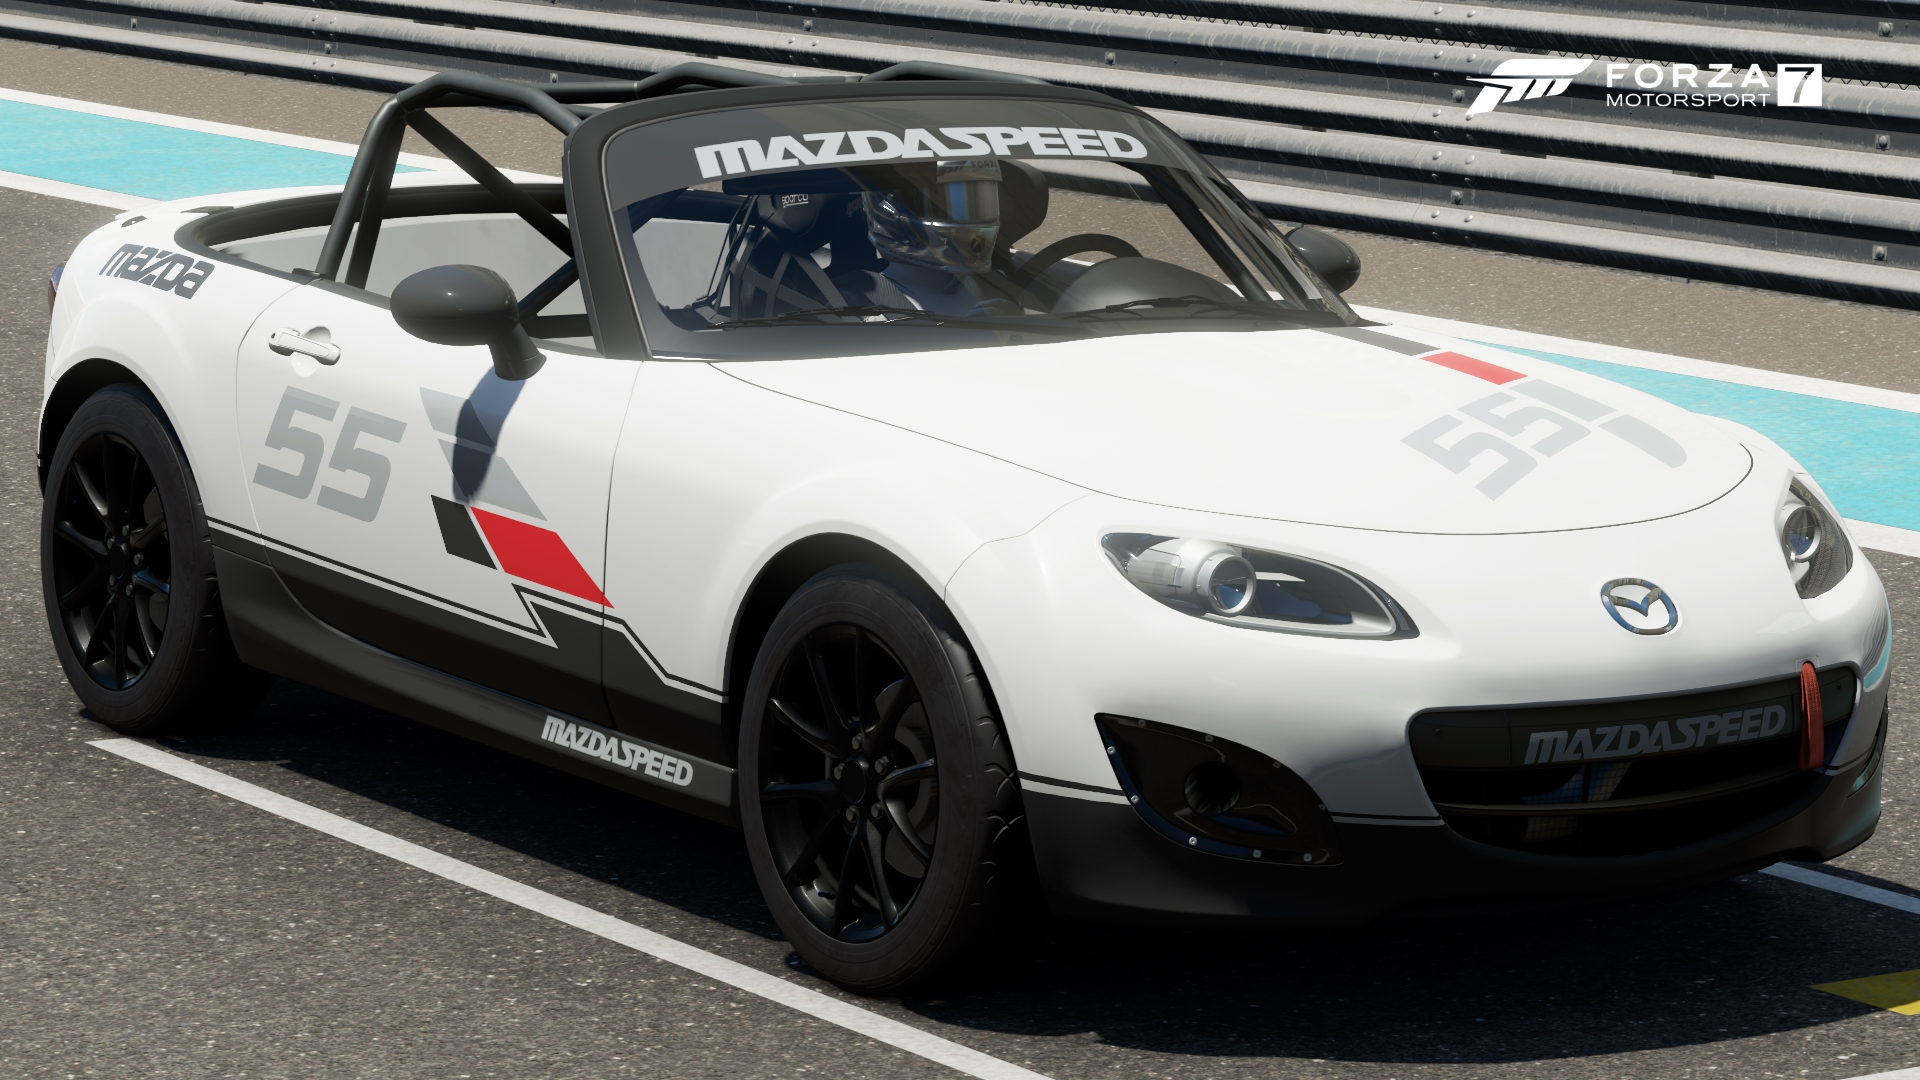 https://vignette.wikia.nocookie.net/forzamotorsport/images/a/ac/FM7_Mazda_MX-5_Cup_Front.jpg/revision/latest?cb=20171215222709